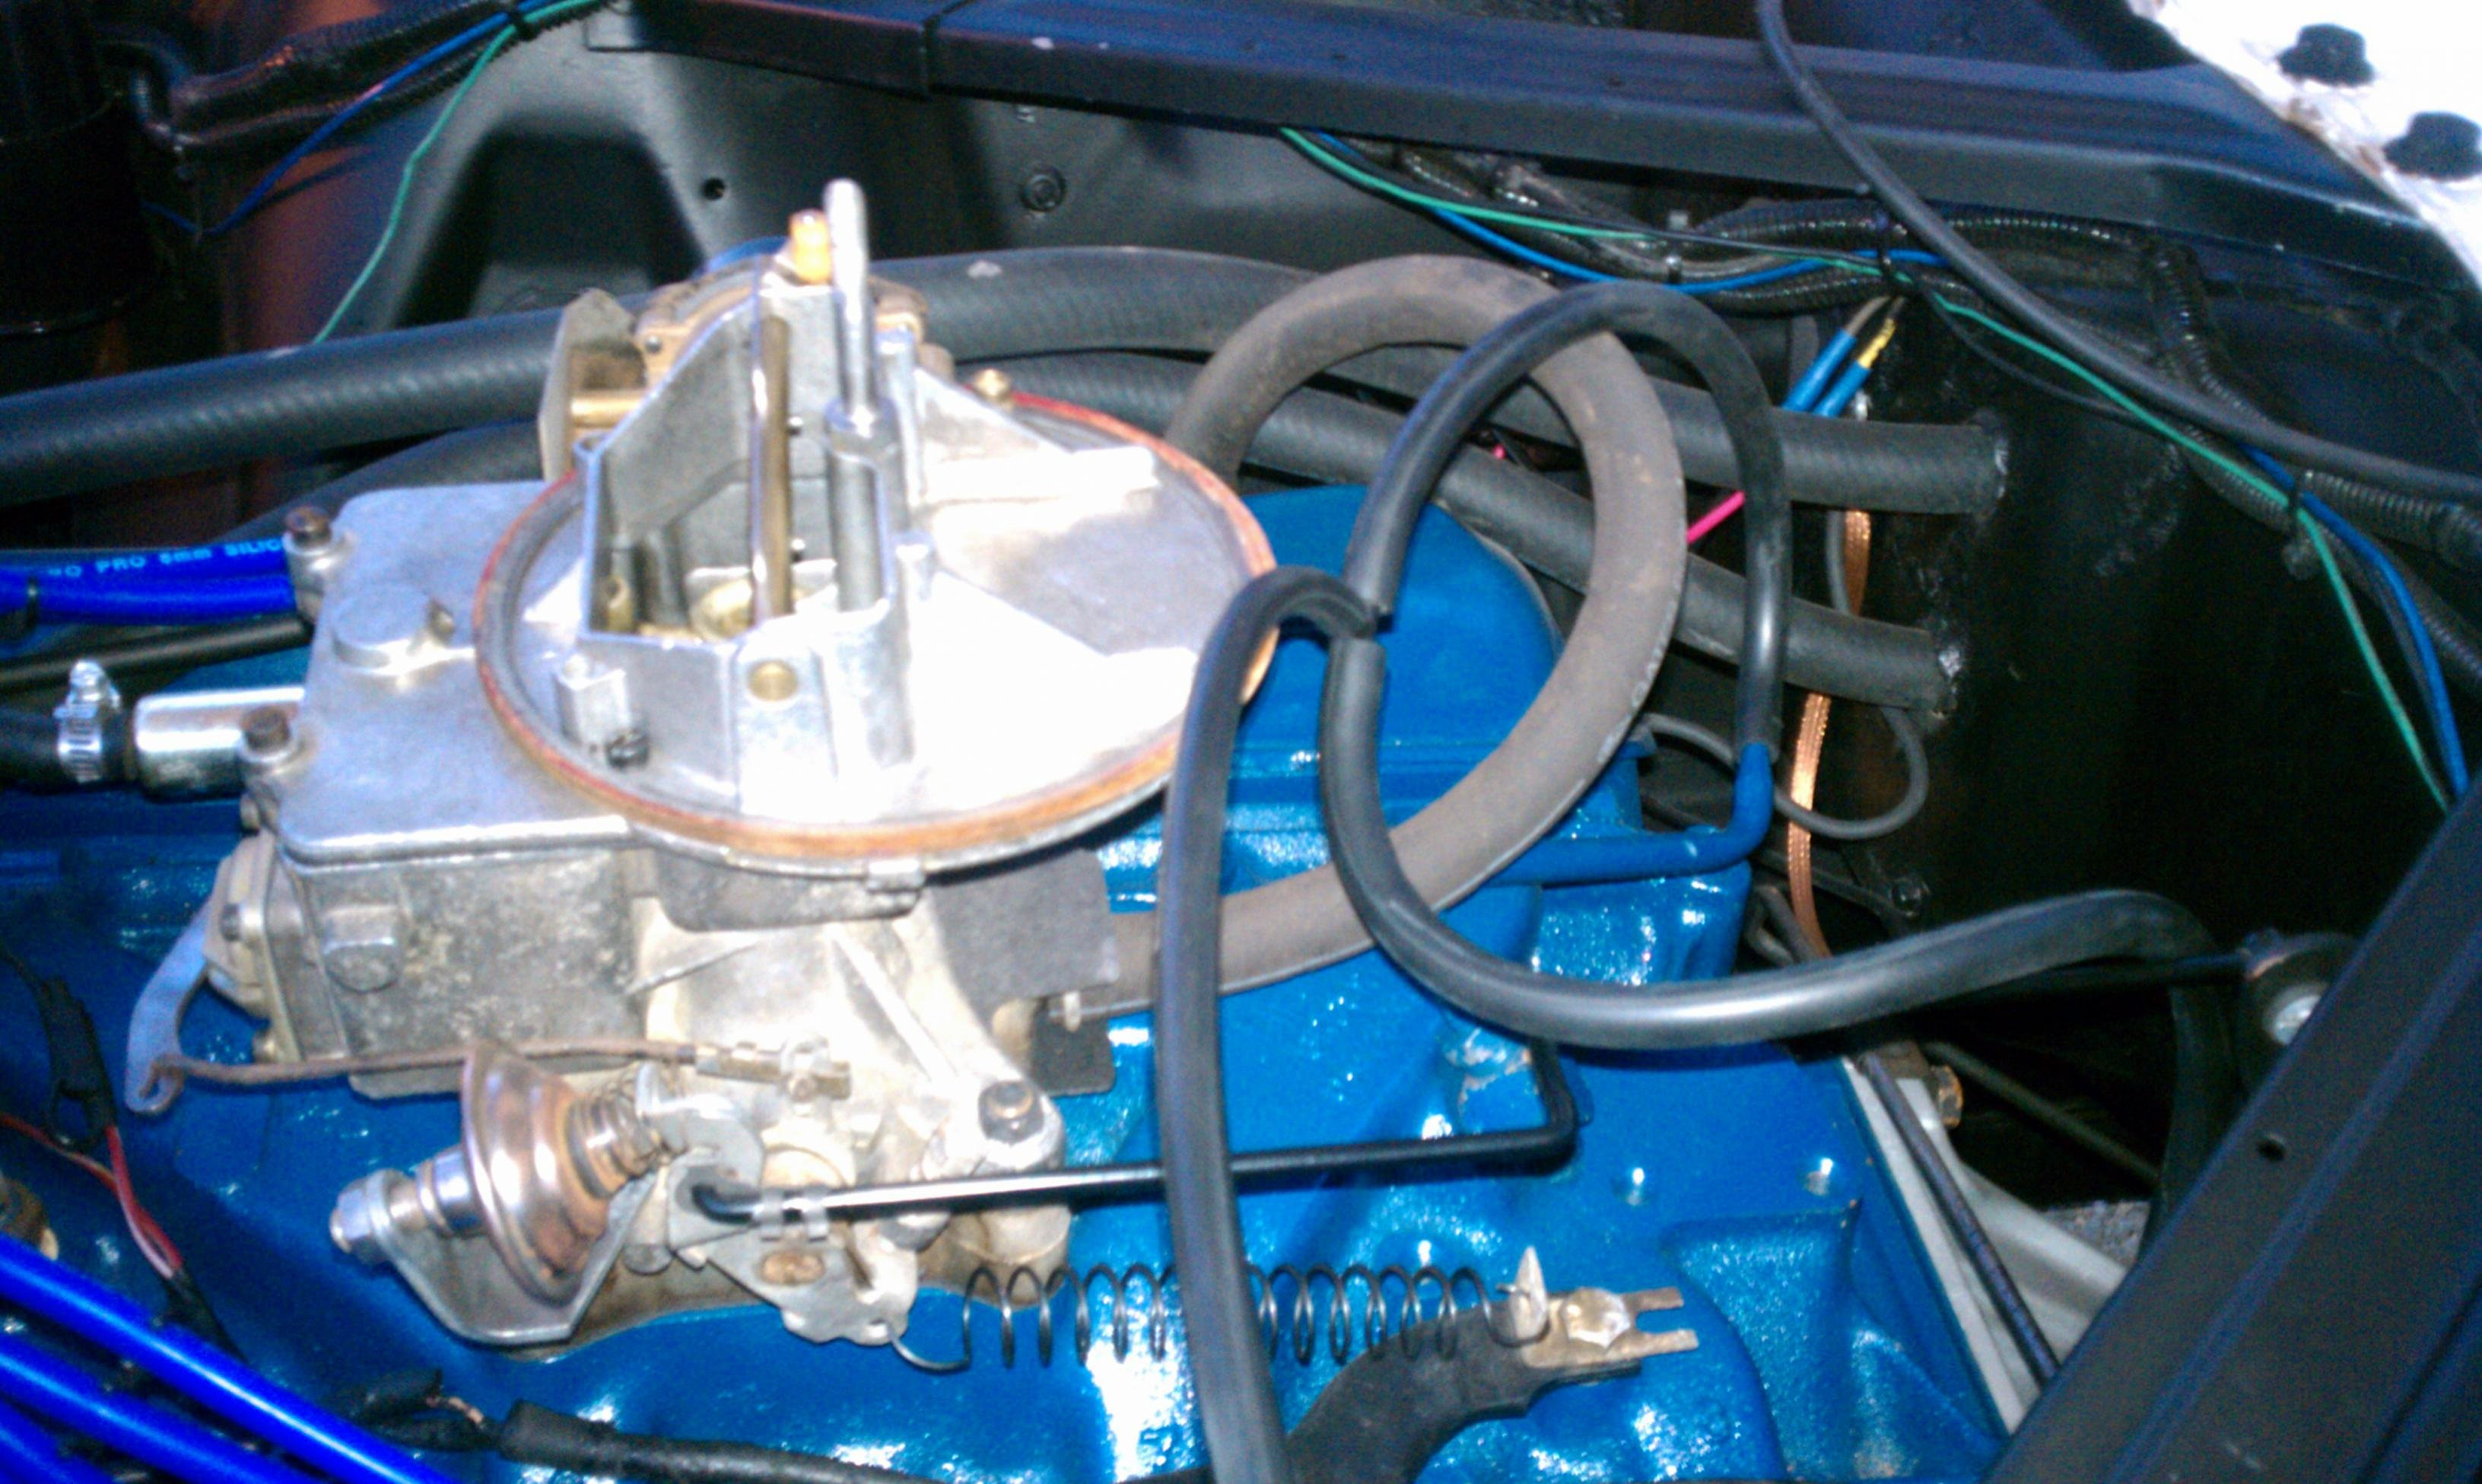 1968 Mustang V8 Engine Diagramon Vw Alternator Wiring Diagram